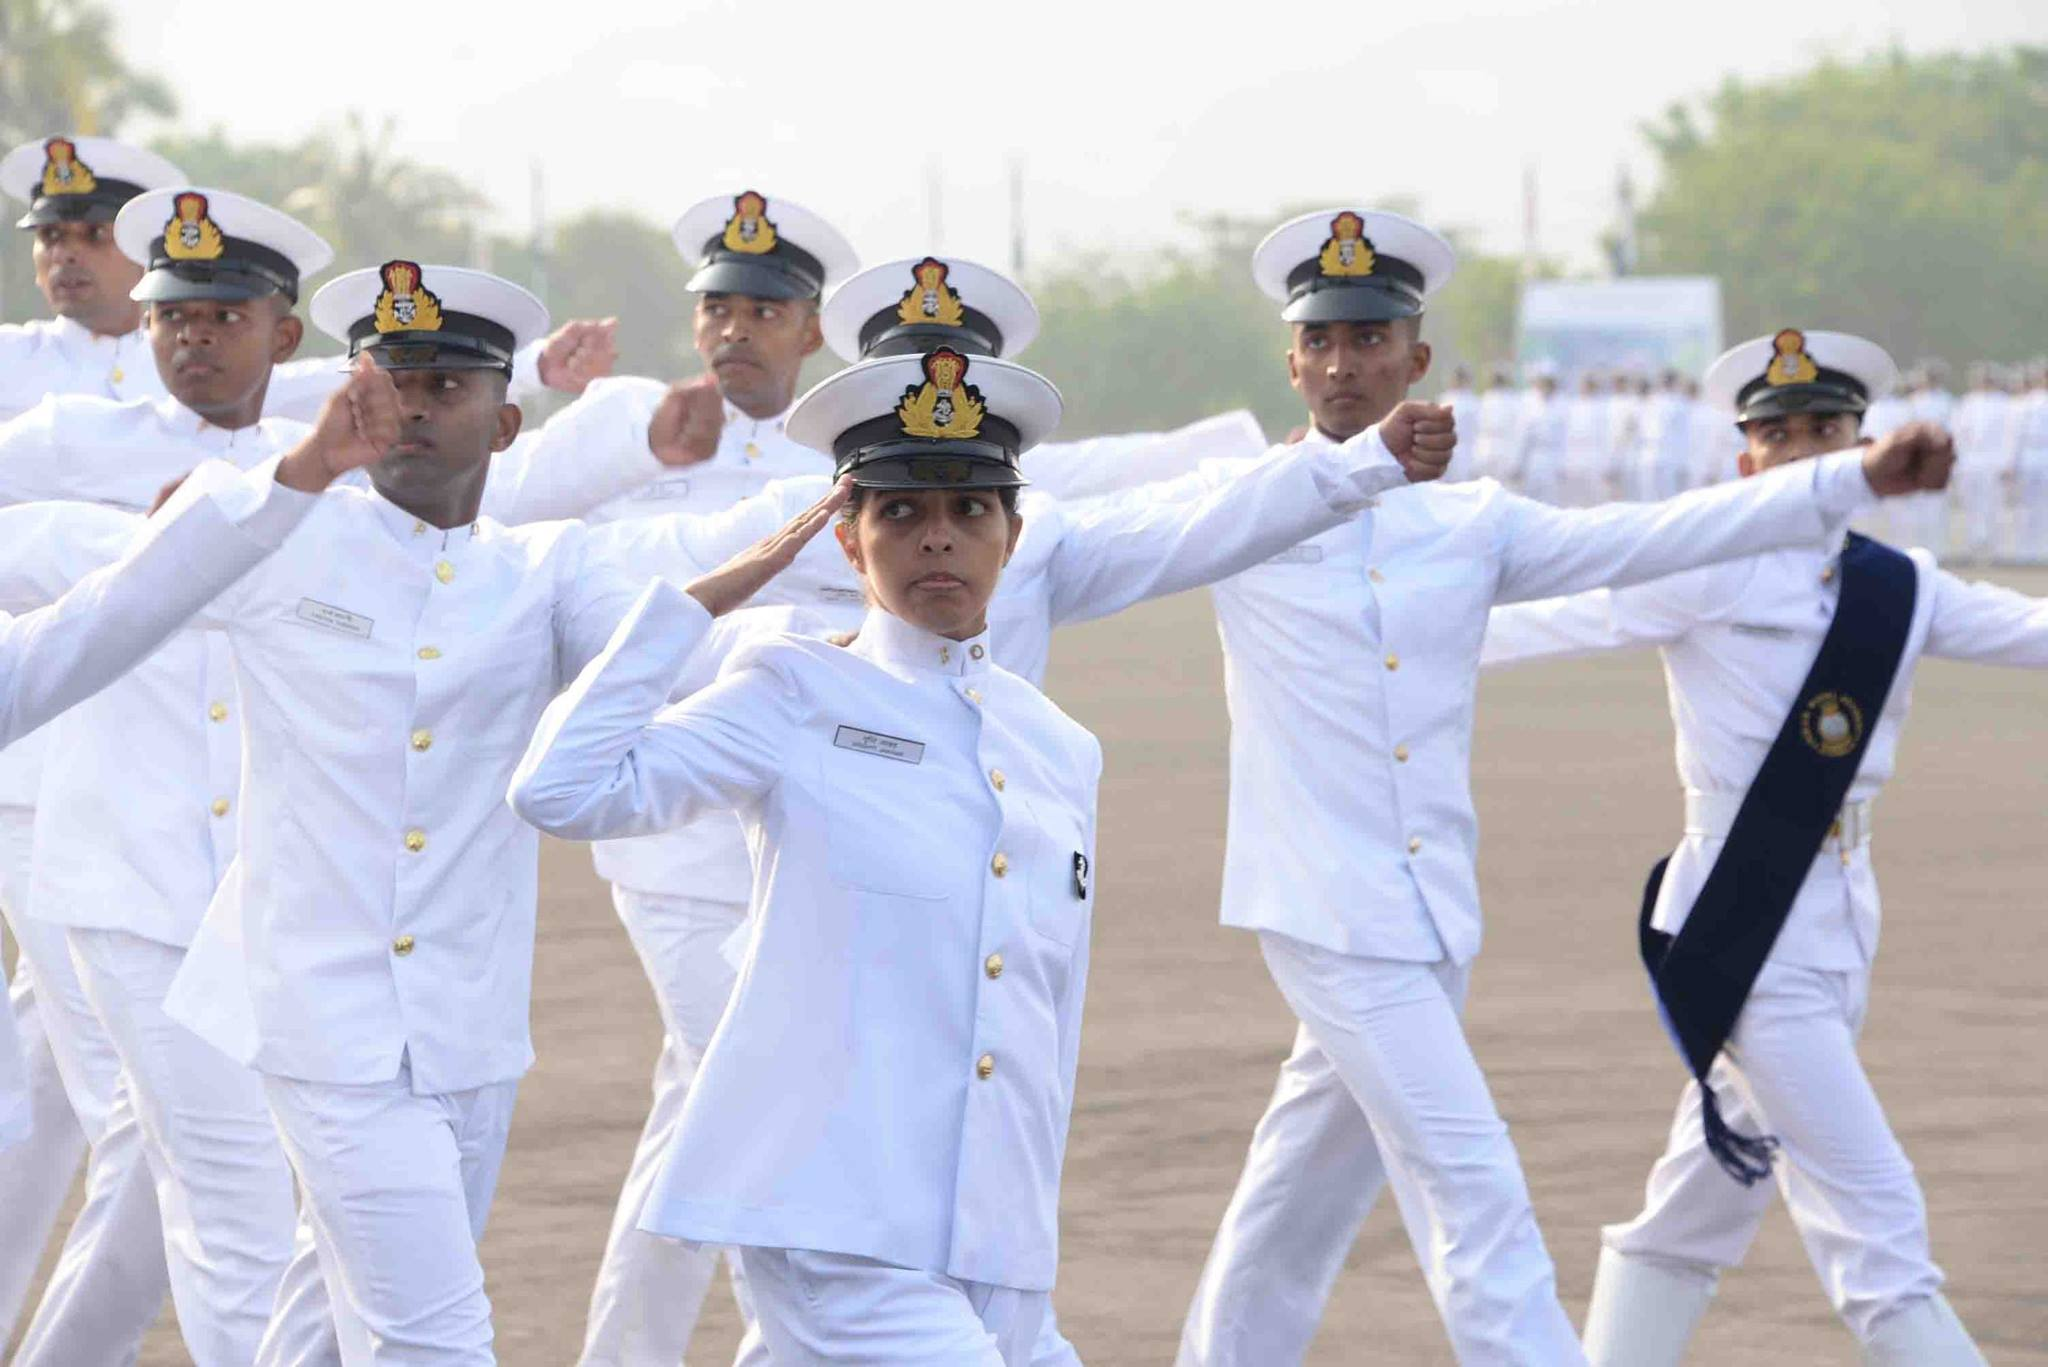 Indian Navy after 10th